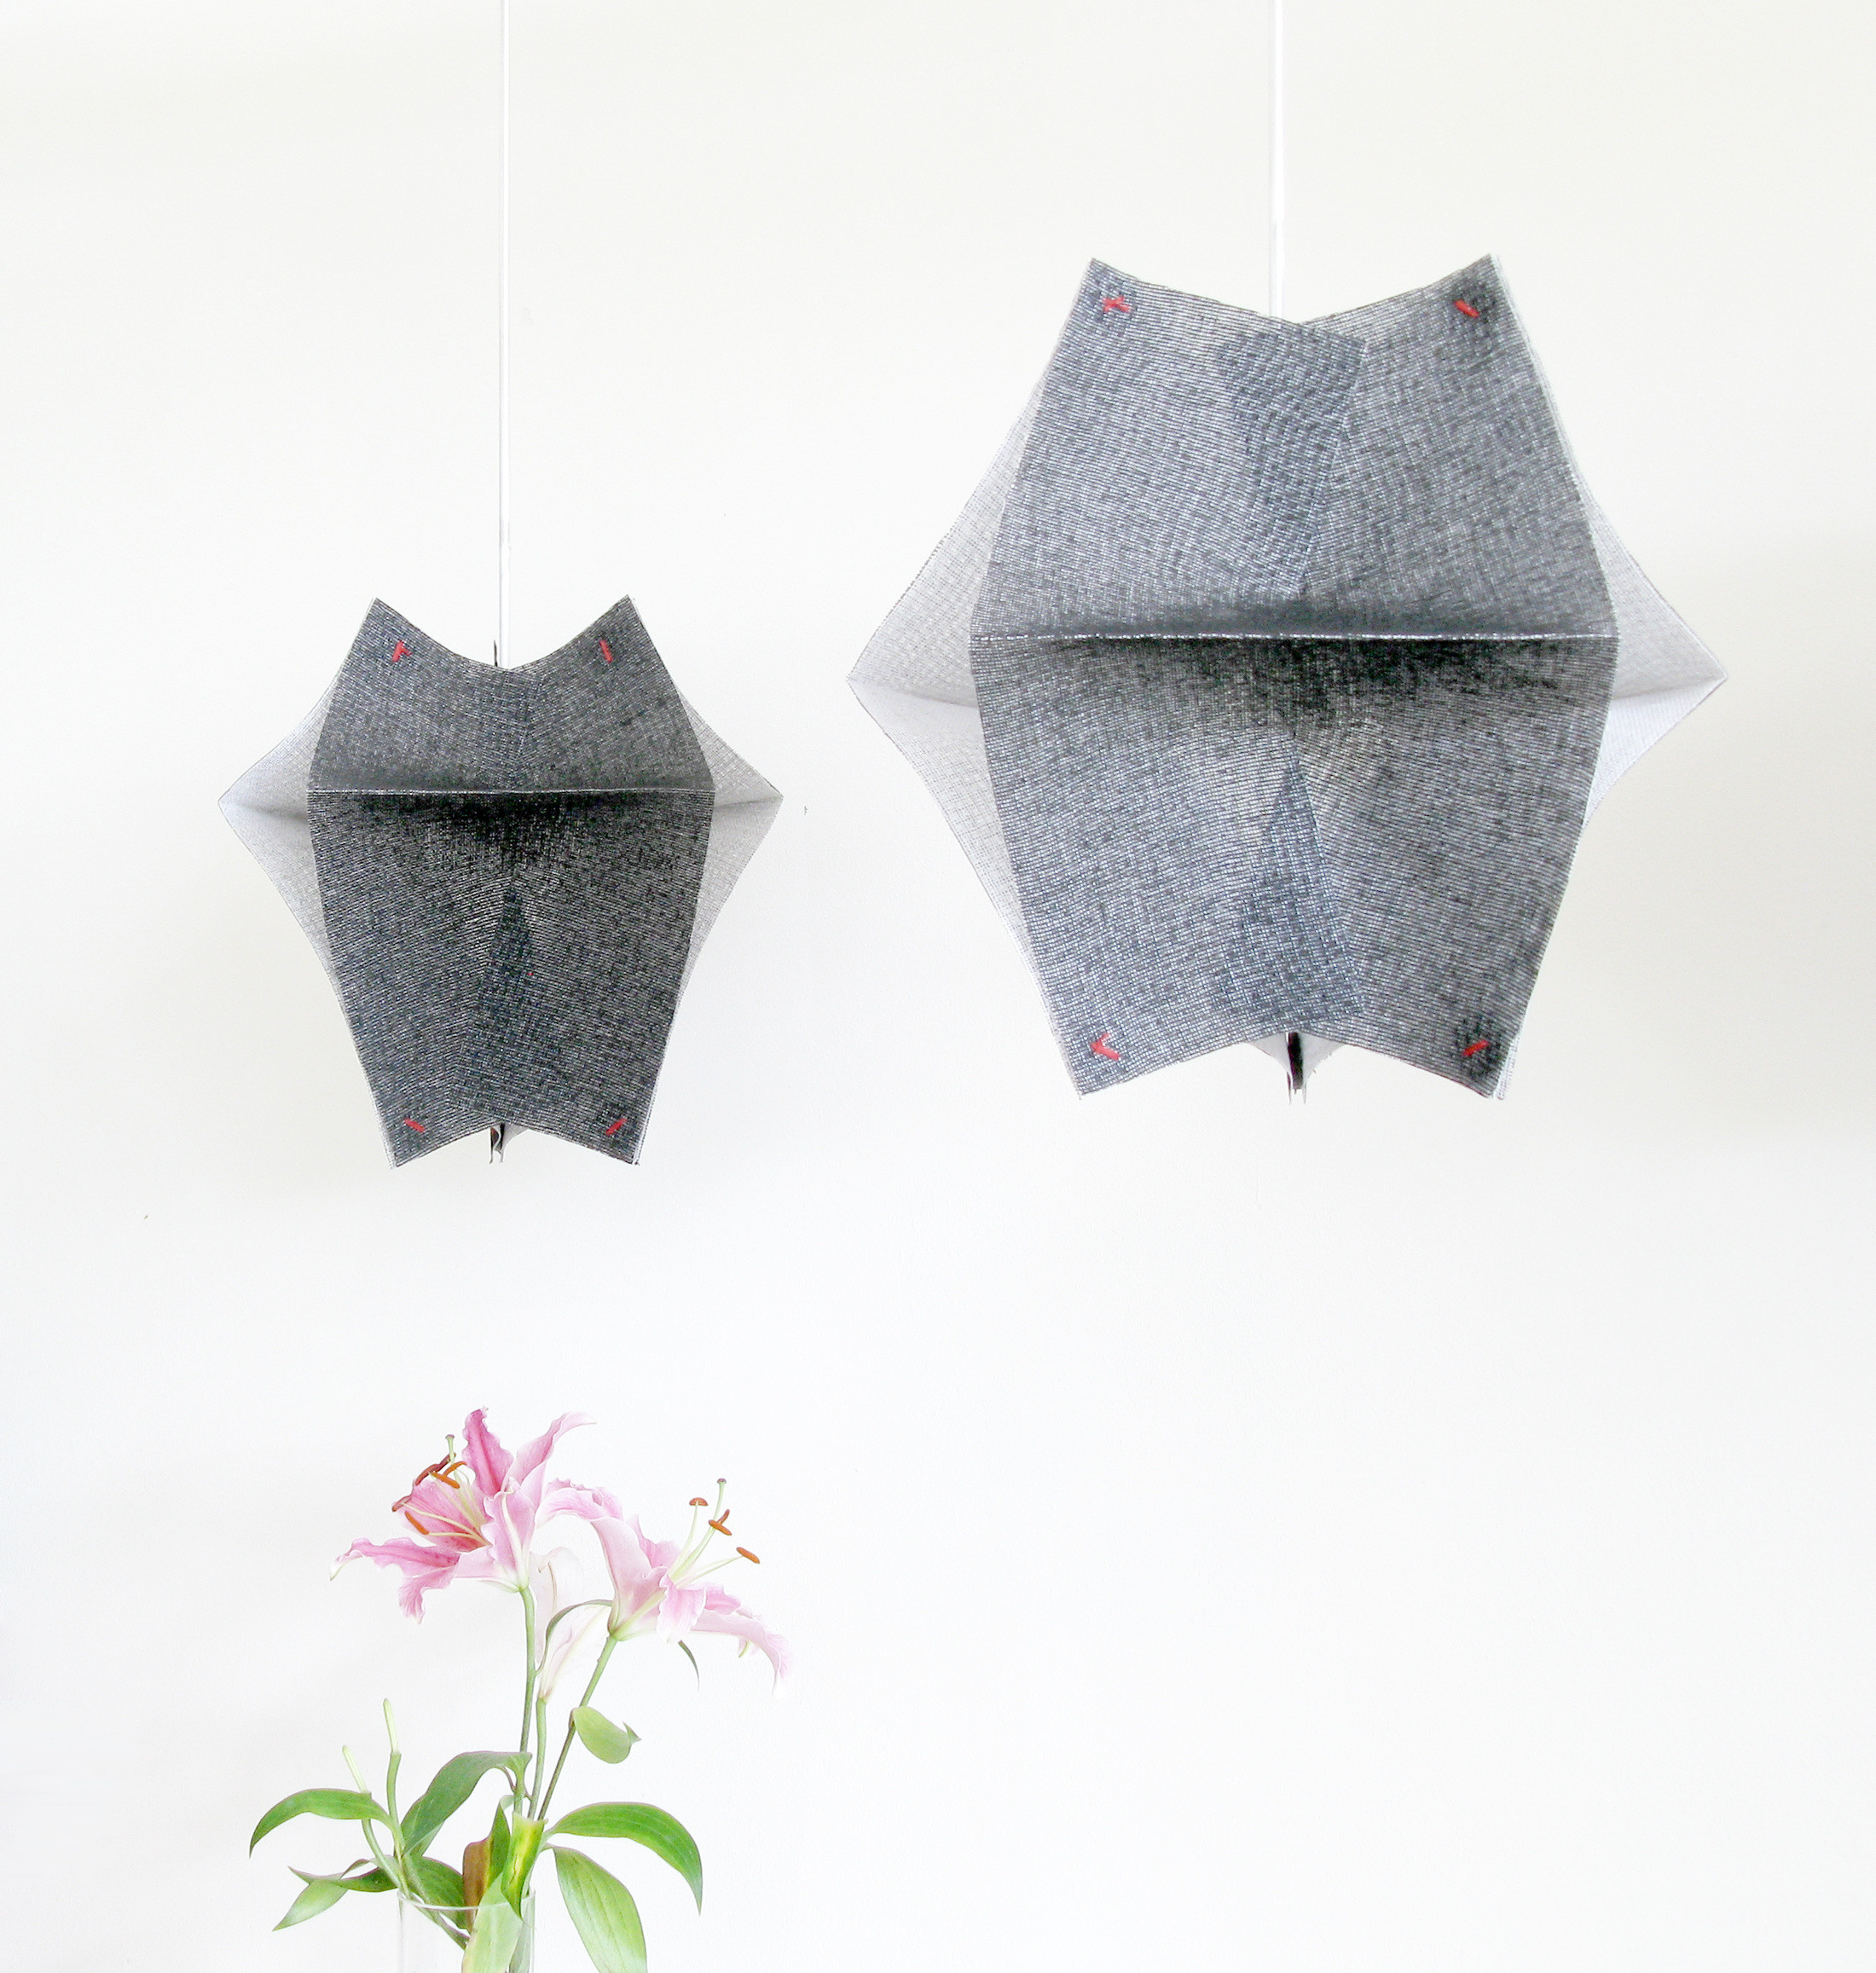 Lighting Fixtures Made of Buckram Fabric - Se'Paar by Taeg Nishimoto (11)